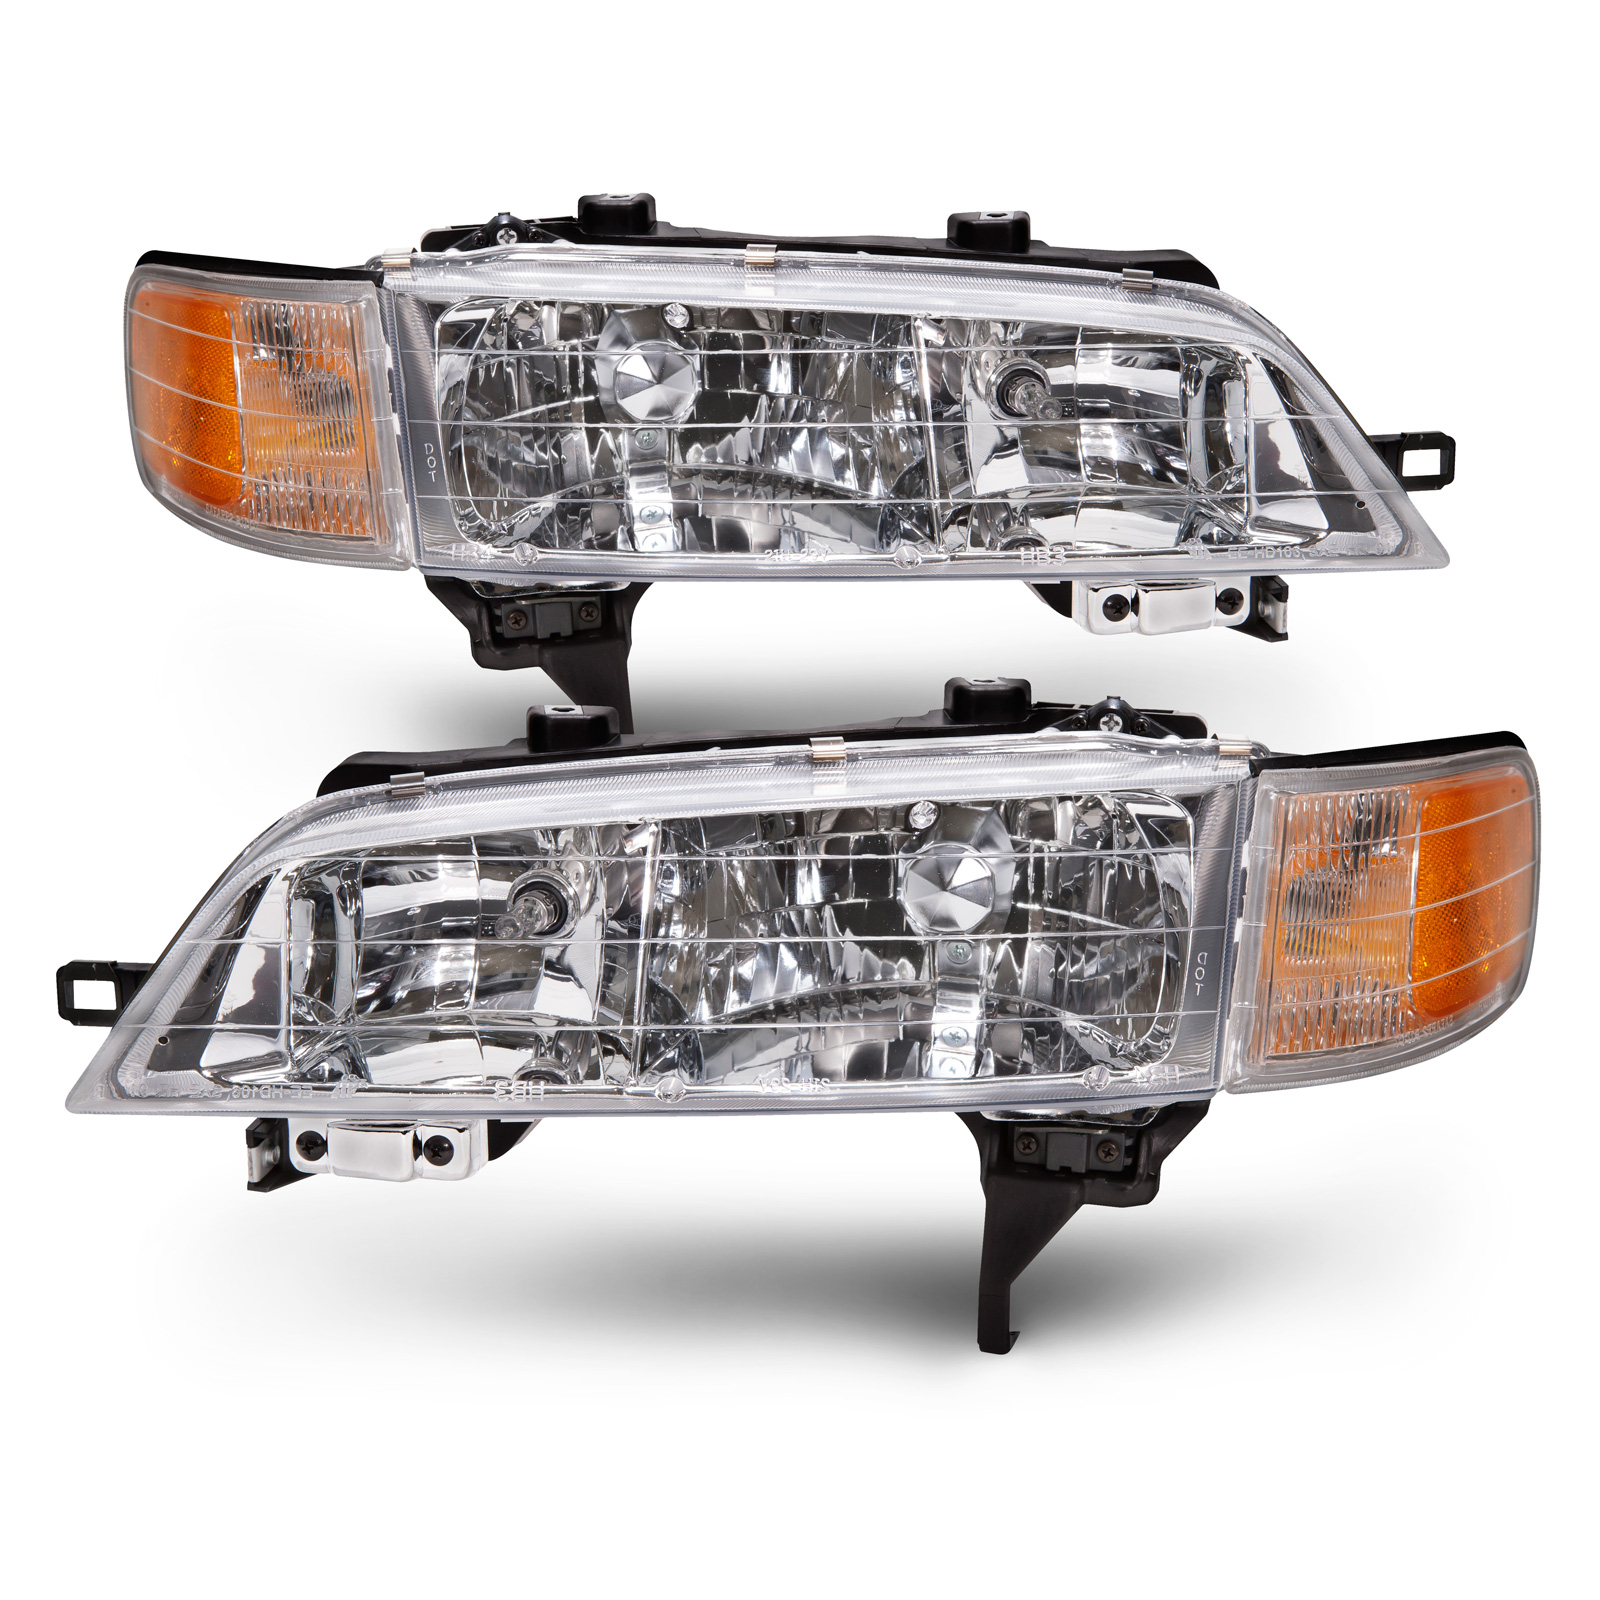 These Are A Set Of Factory Style Aftermarket Headlight